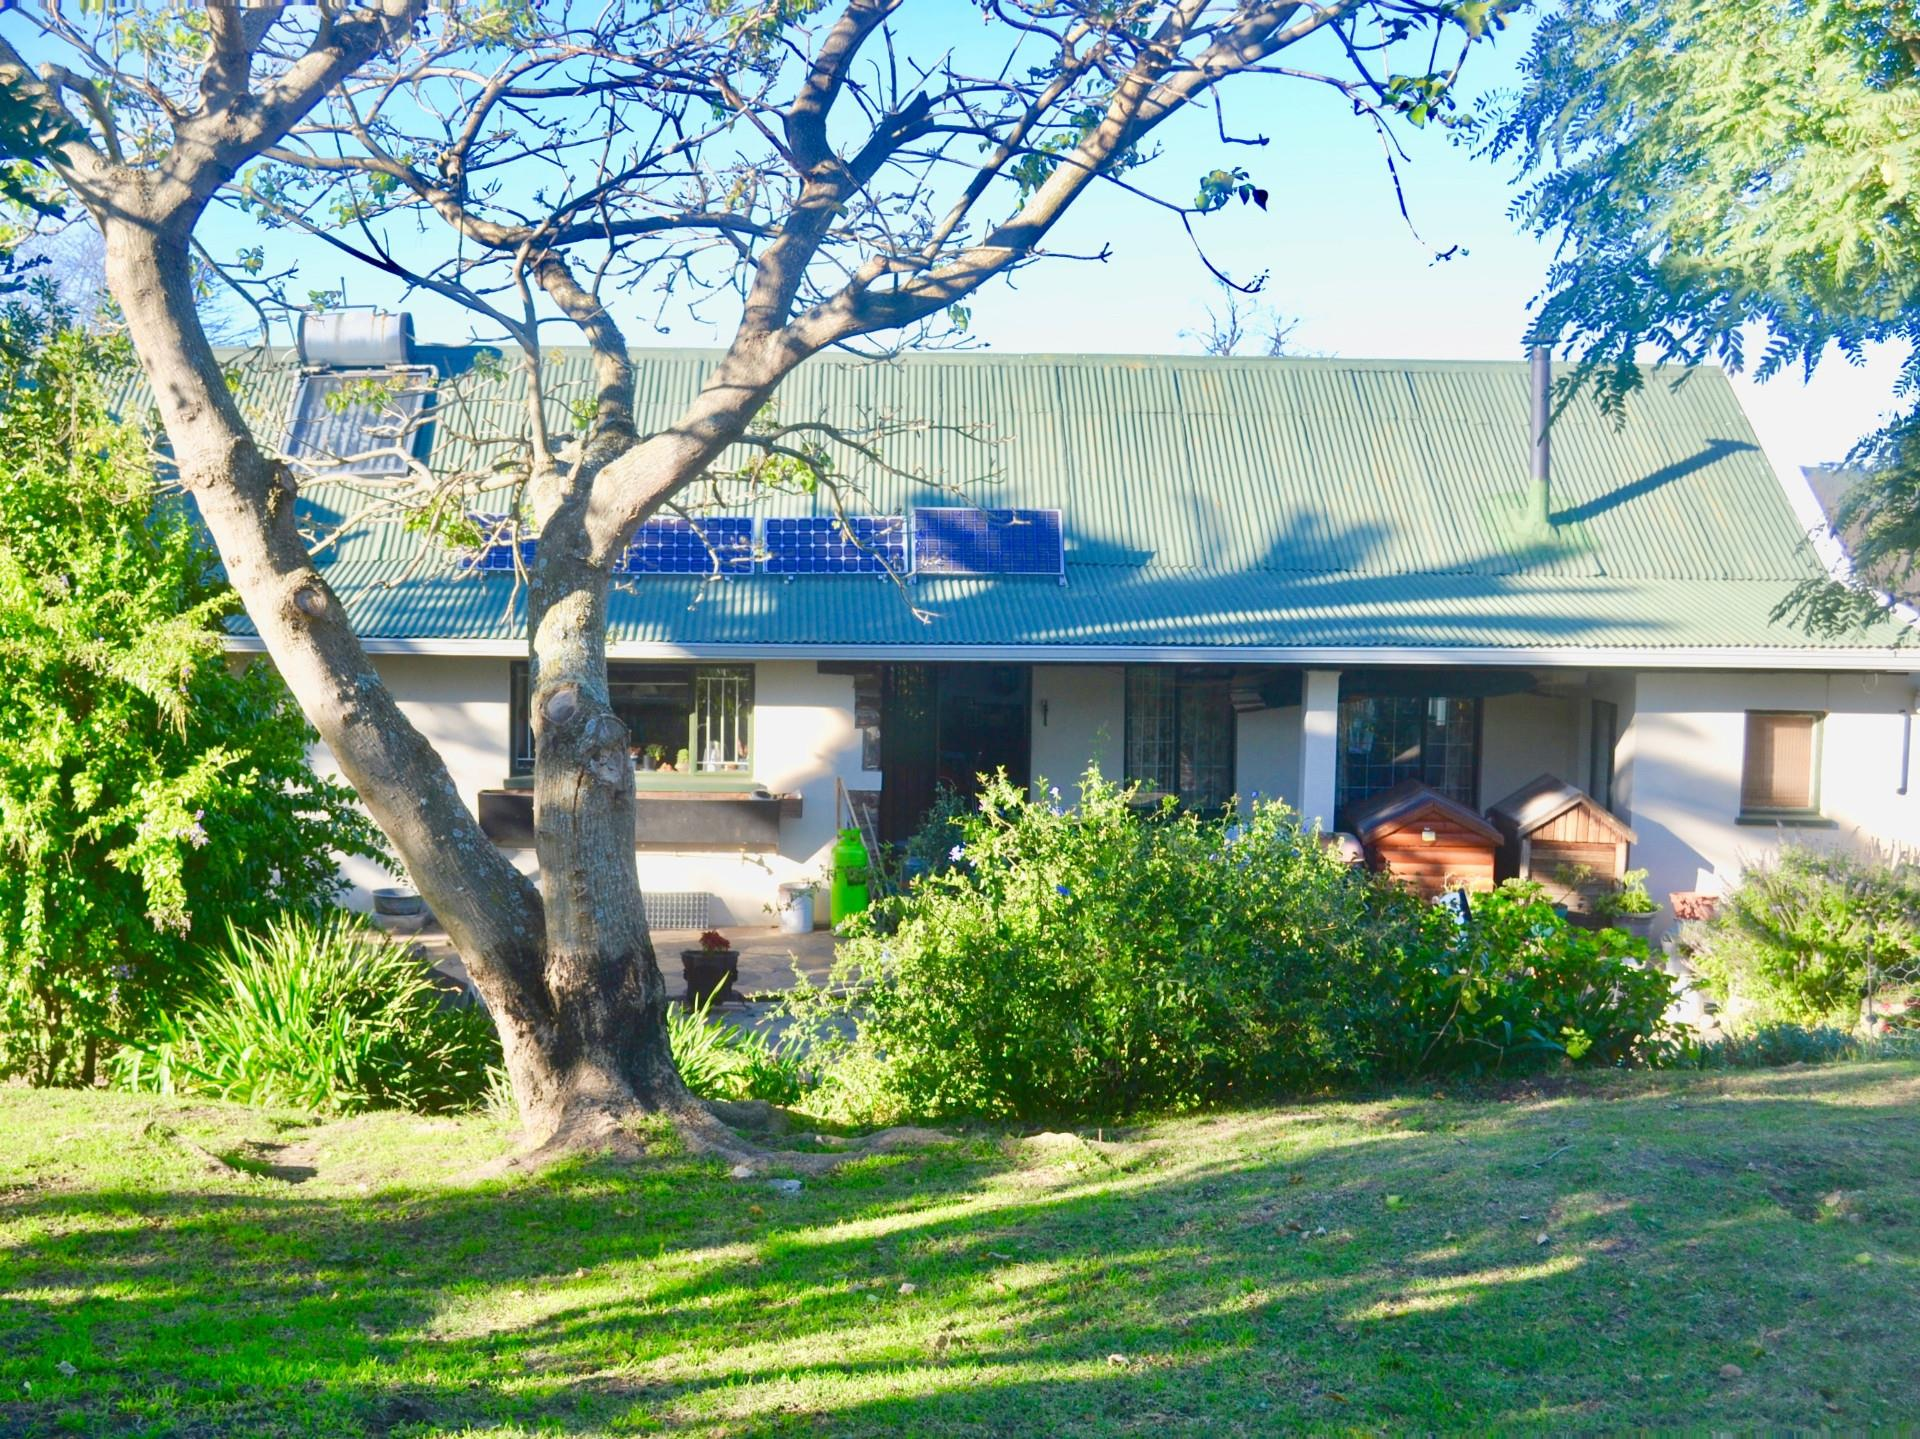 Small Holding in Green Pastures For Sale